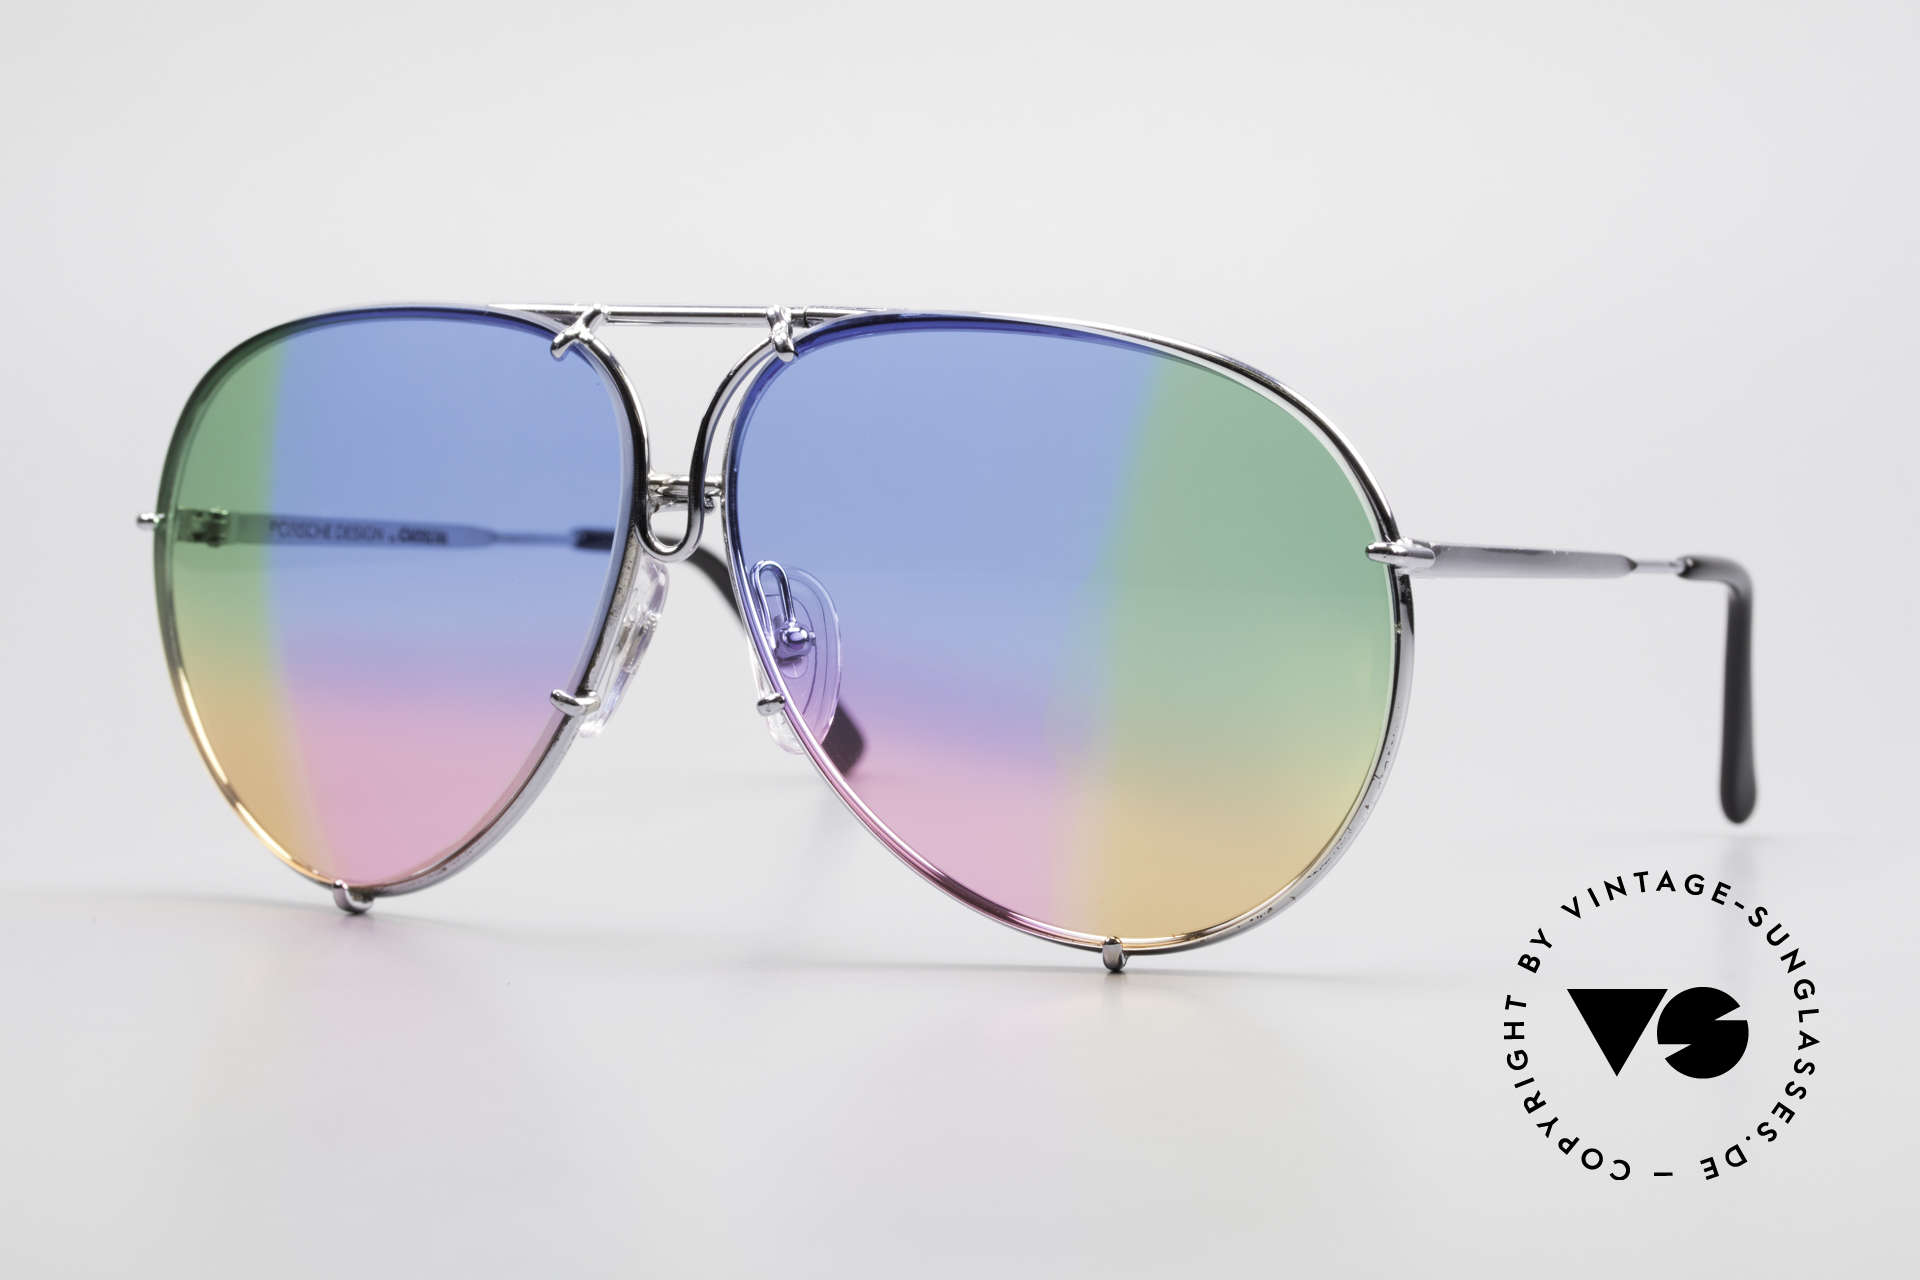 Porsche 5623 One Of A Kind 4times Colored, vintage Porsche Design by Carrera shades from 1987, Made for Men and Women